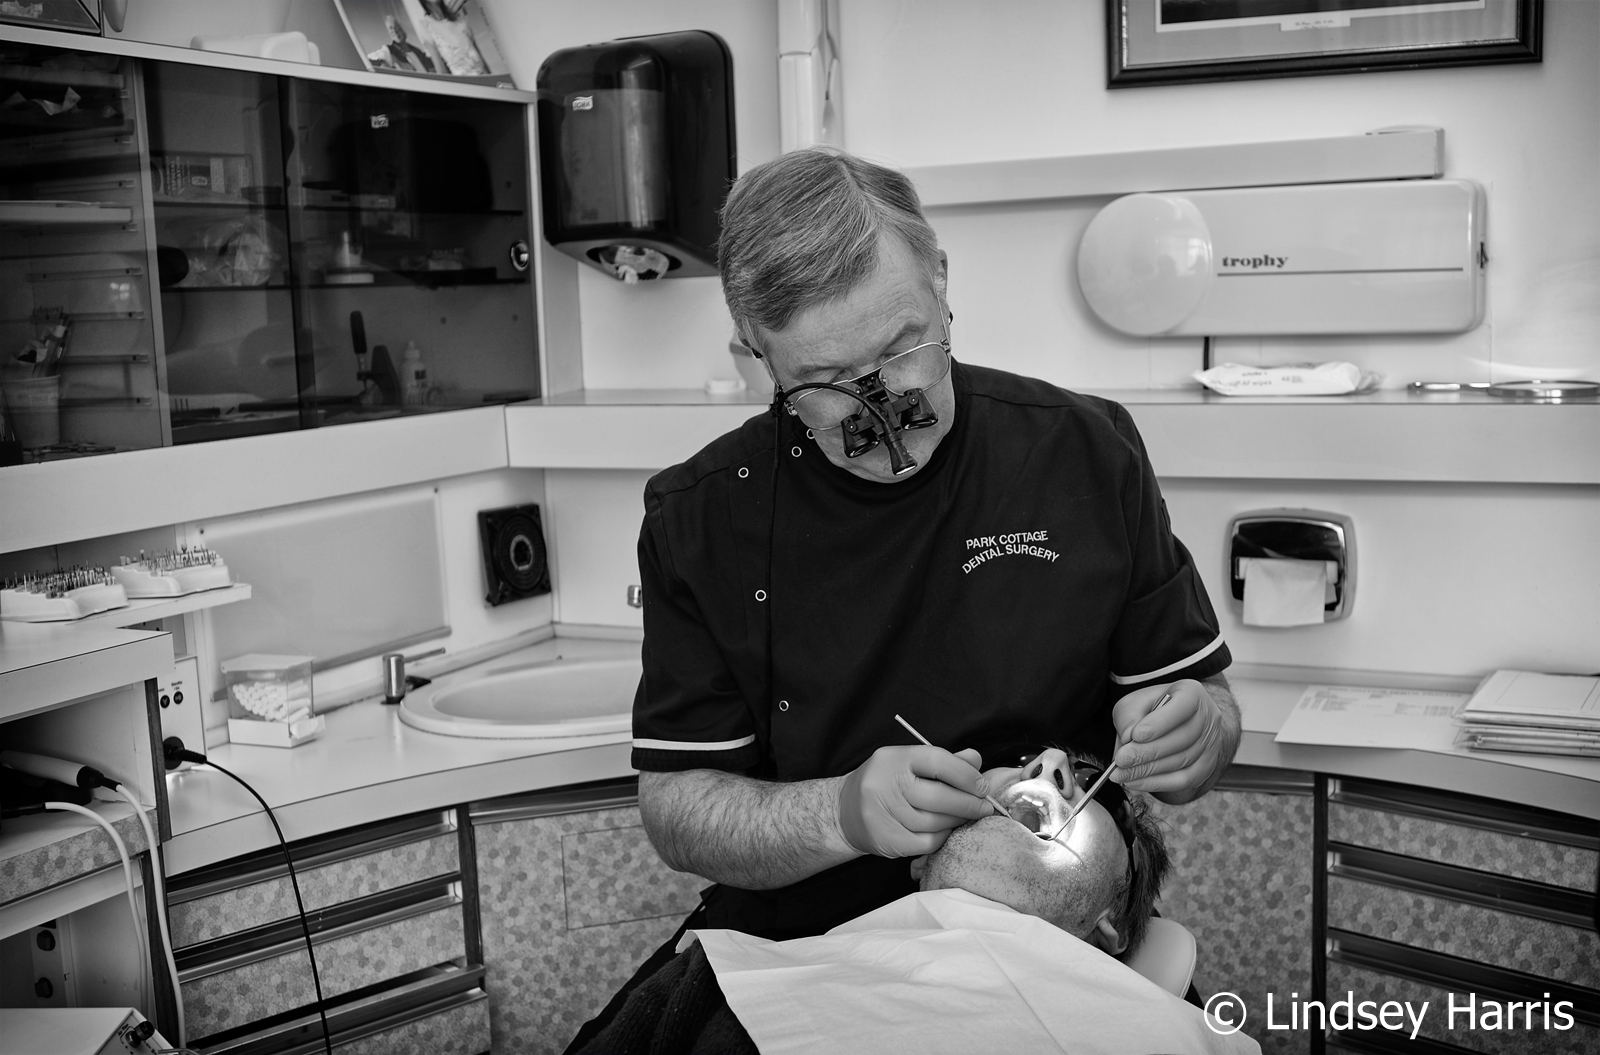 Park Cottage Dental Practice